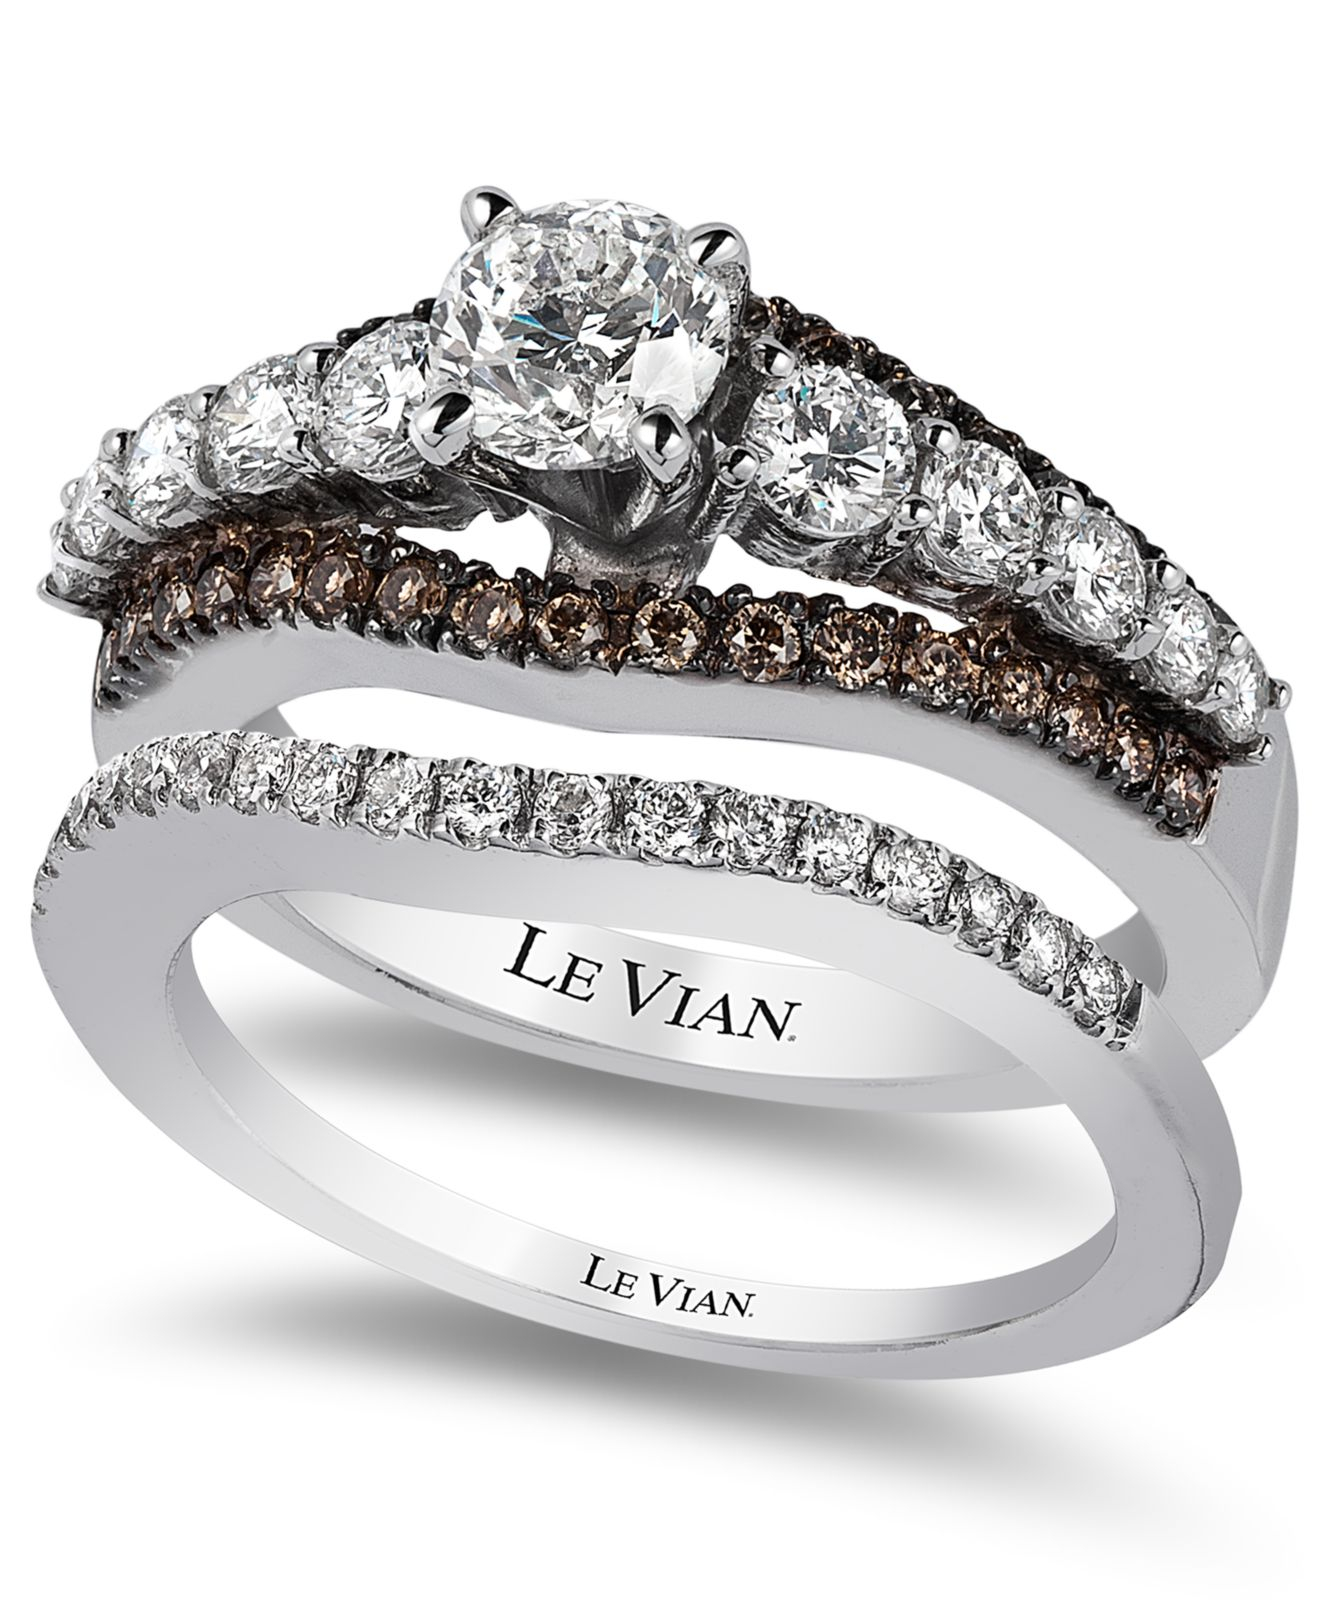 Le vian Bridal Certified White And Chocolate Diamond Engagement